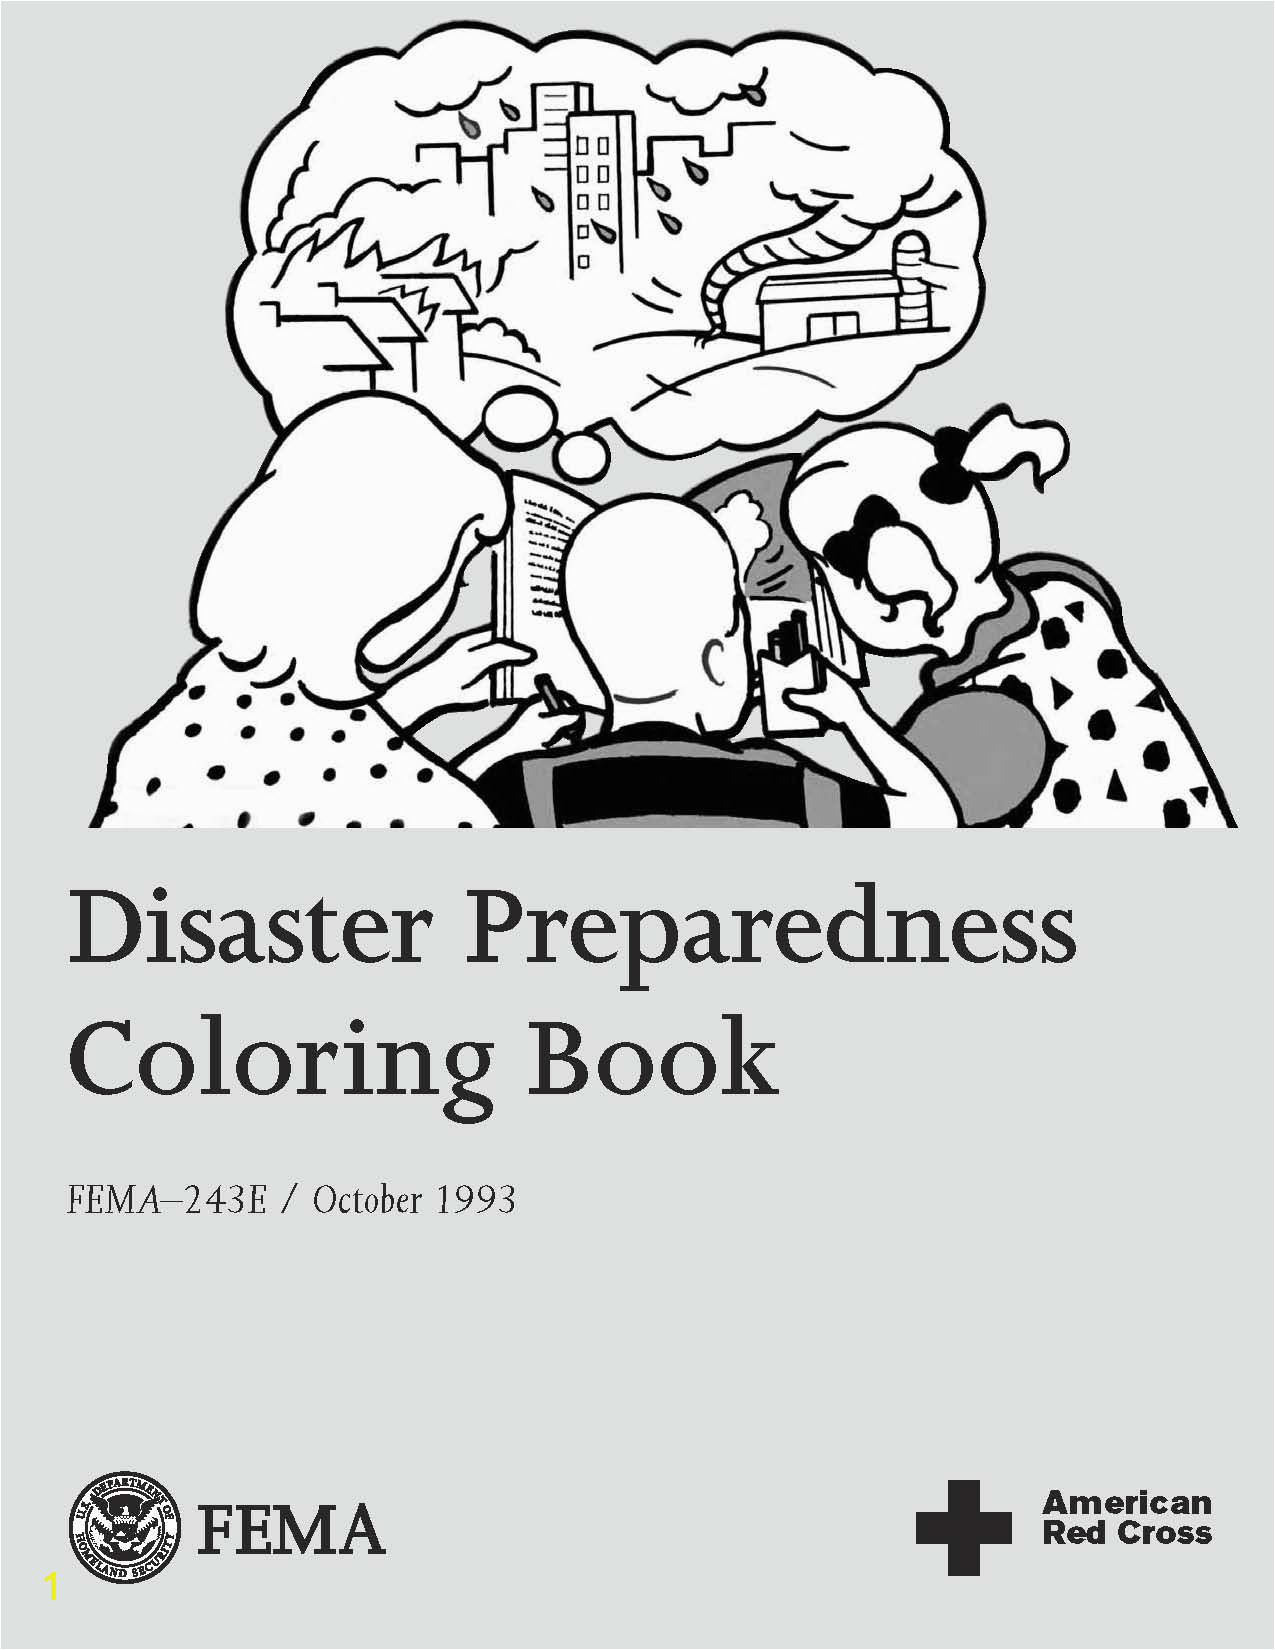 Disaster Preparedness Coloring Book FEMA 243E PDF 926 KB TXT 25 KB Available in Spanish PDF 612 KB TXT 25 KB For ages 3 10